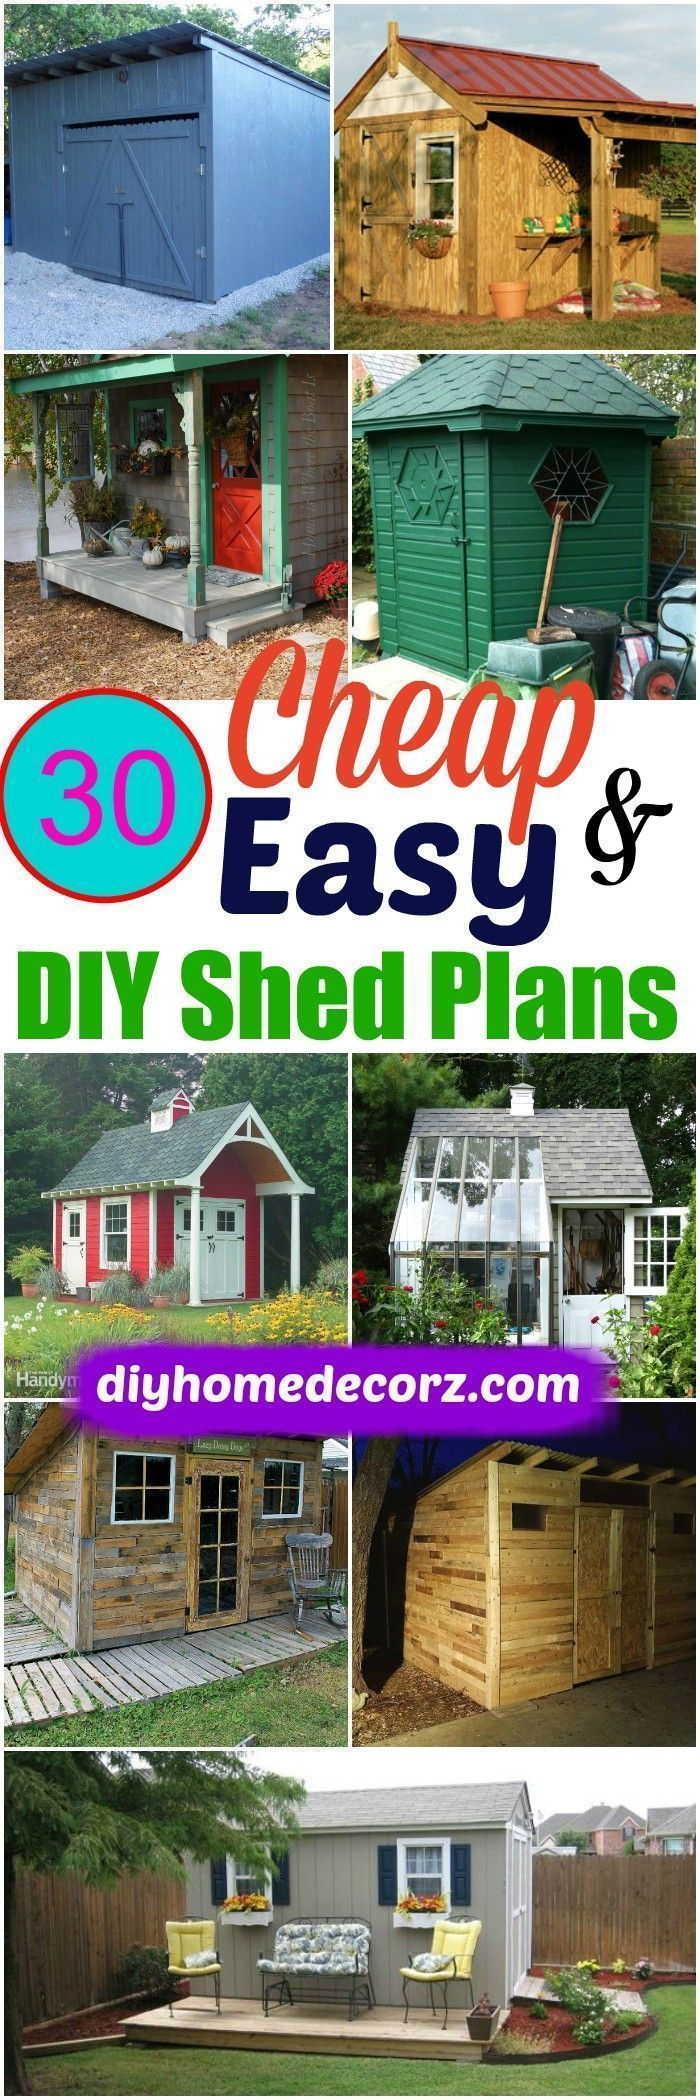 we have brought this collection of #DIY #Shed #Plans that will help you build a beautiful shed of your choice without causing any load on your wallet or pocket!Build A Cheap Storage Shed #buildashedcheap #PortableShedPlan